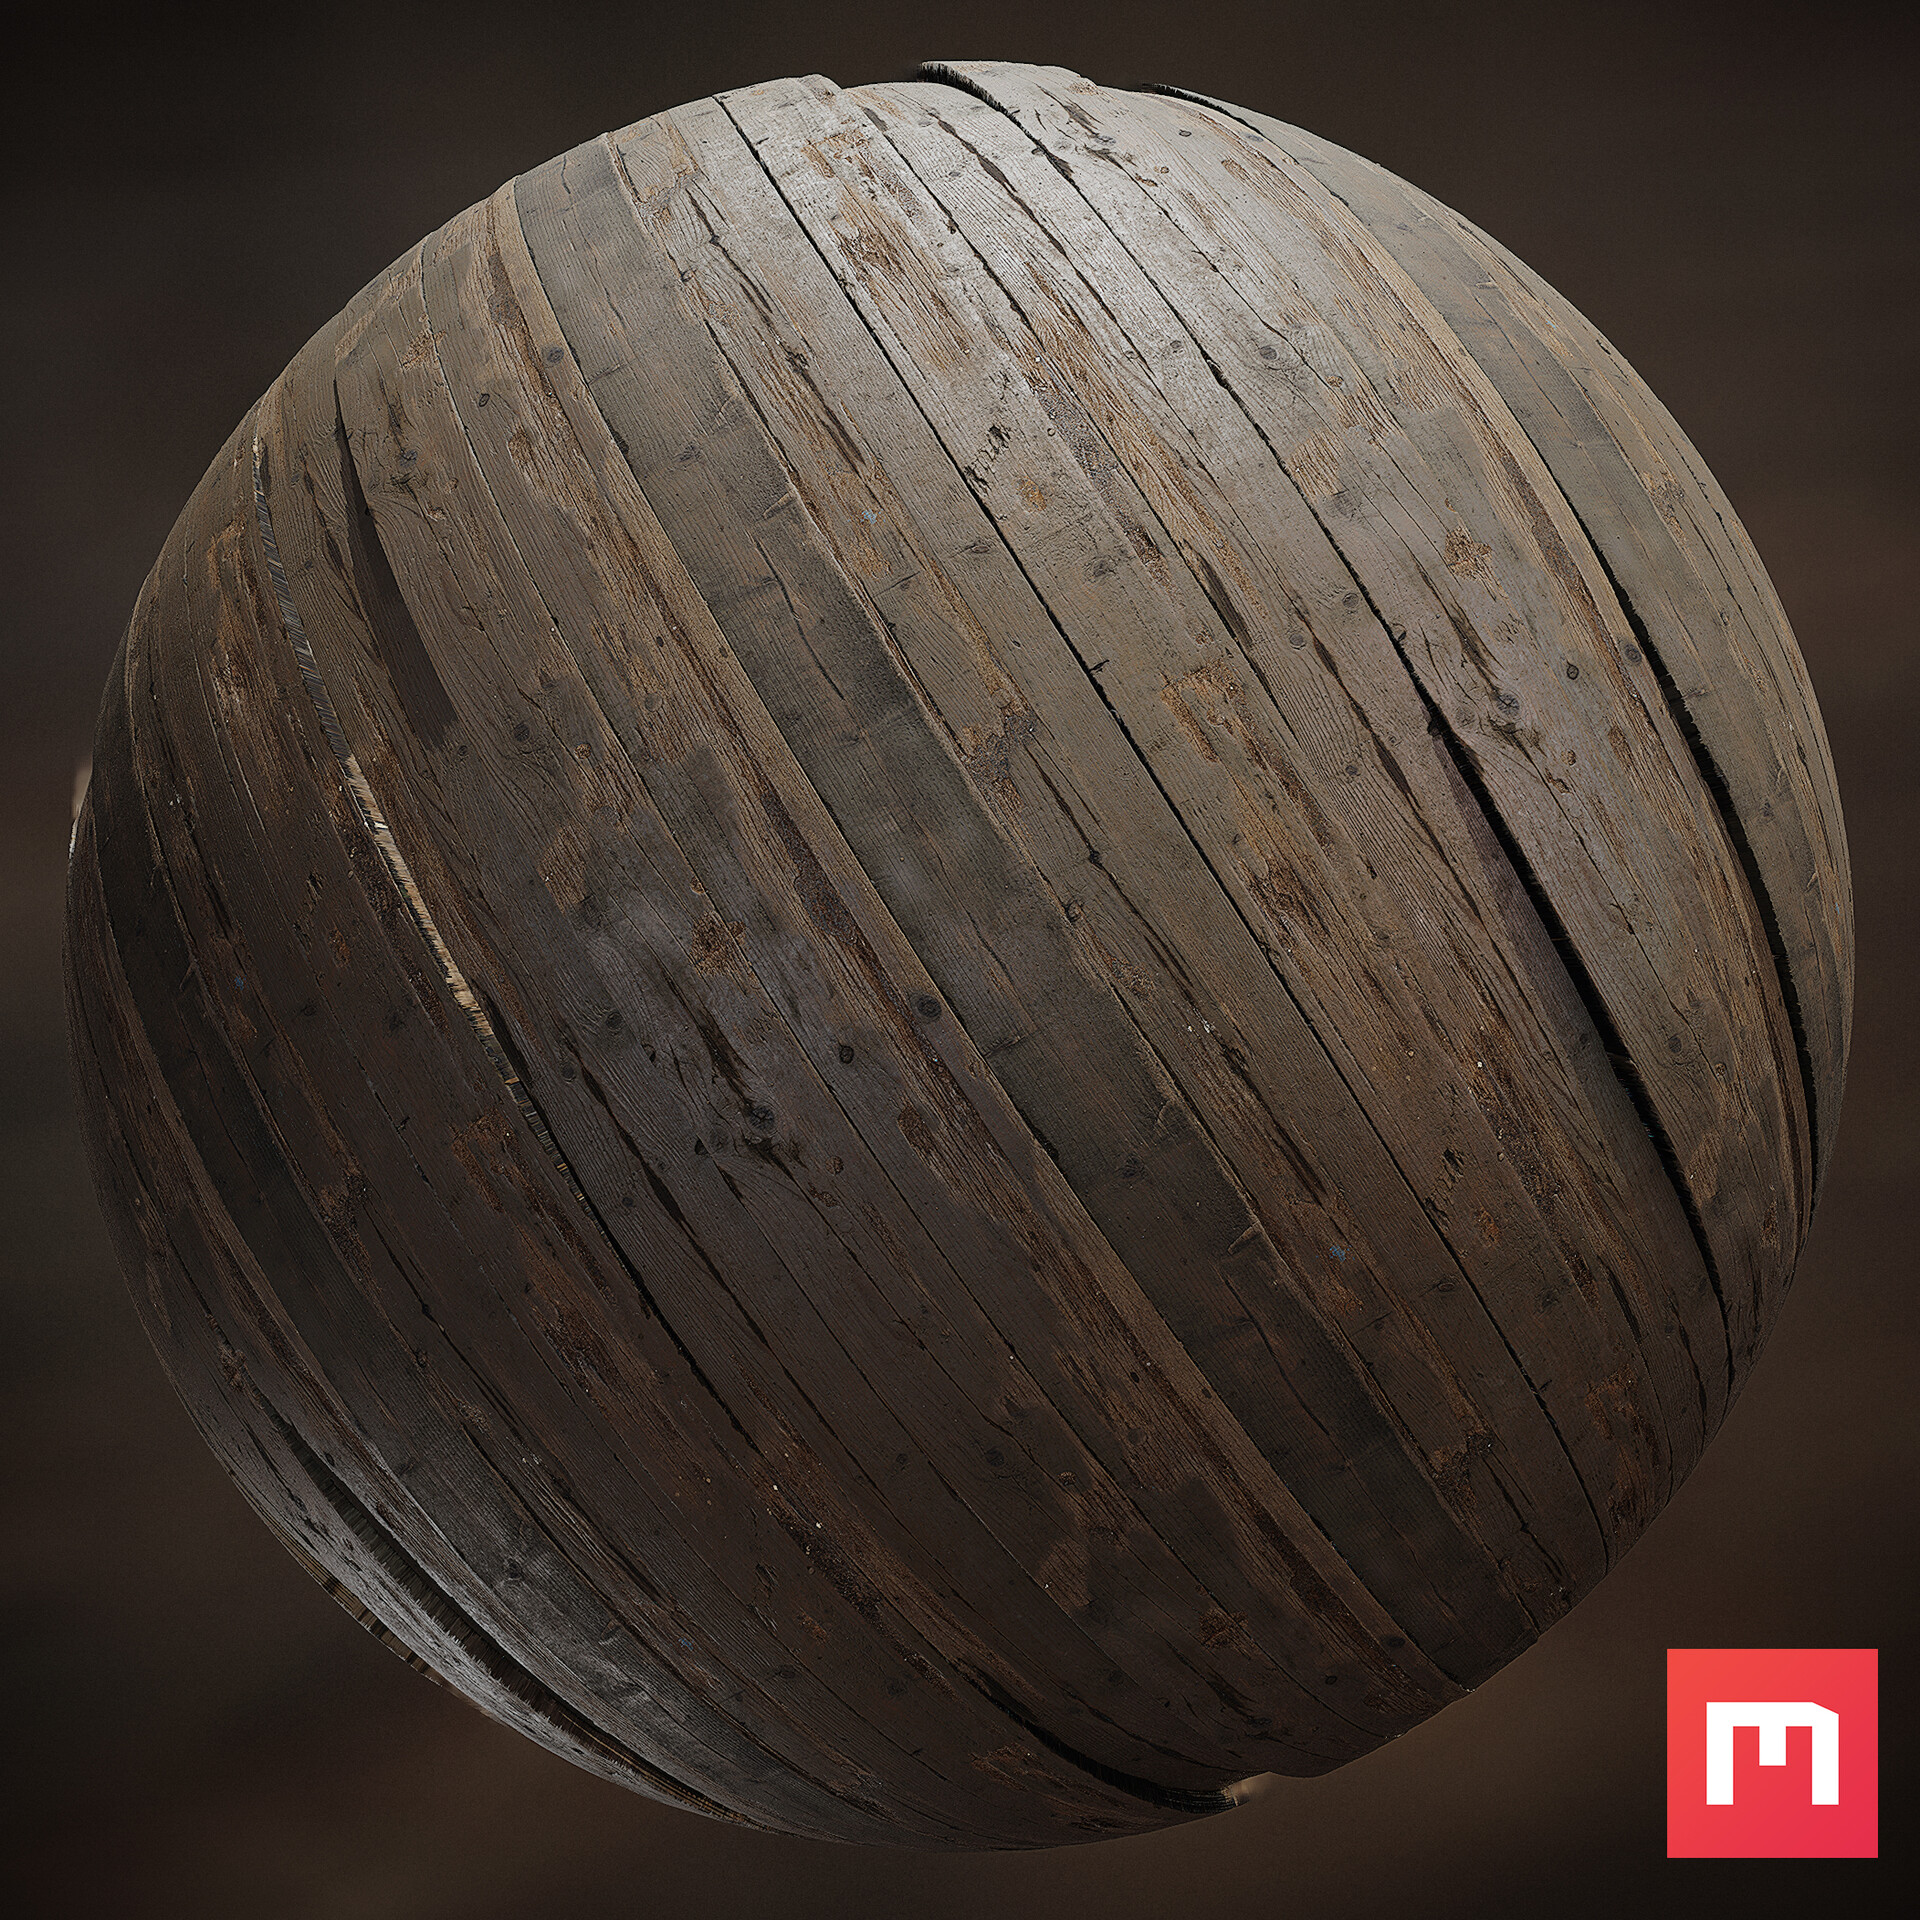 Floor material, made in Quixel Mixer.